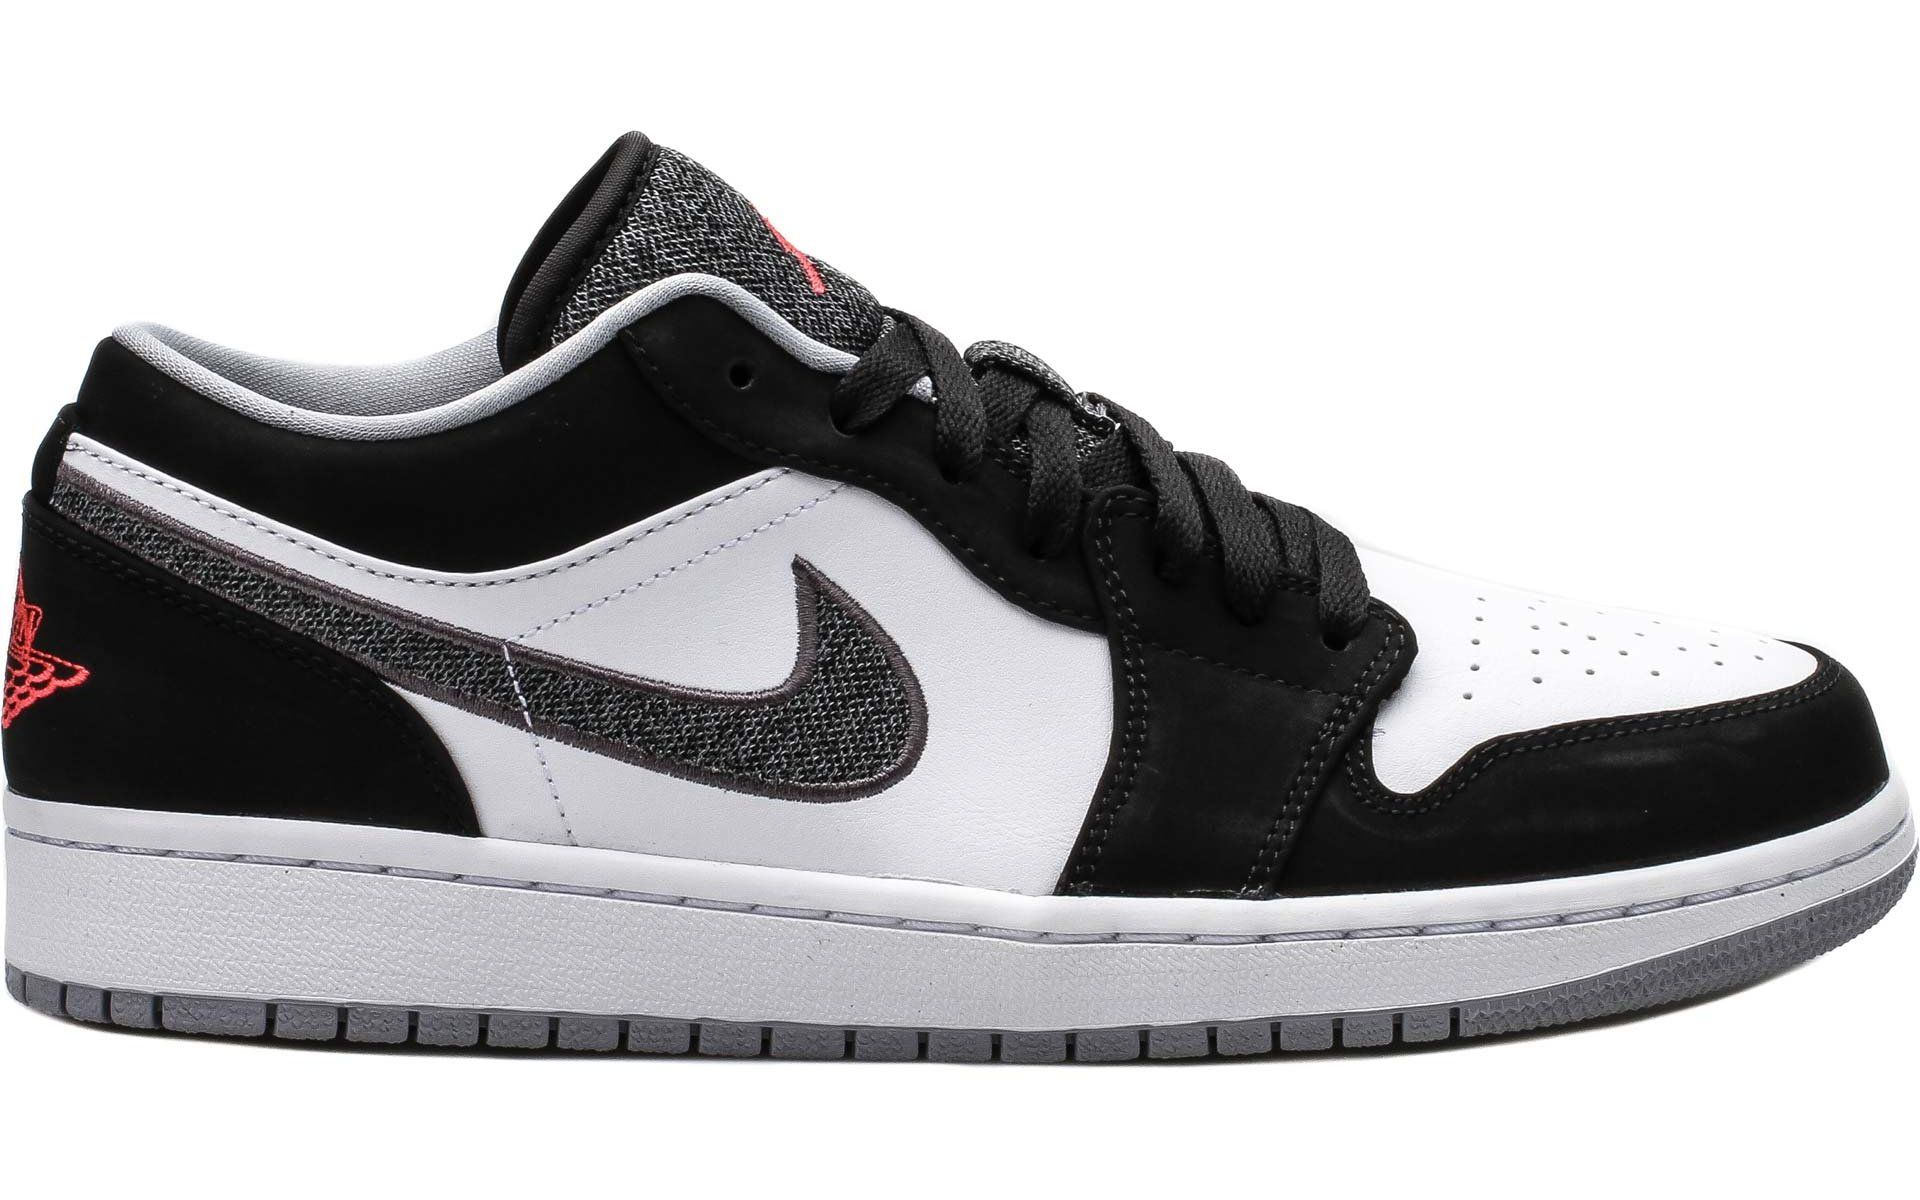 99c64a8a8c15e5 Air Jordan 1 Low Lifestyle - Black   Infrared 23-White-Grey - Air 23 ...